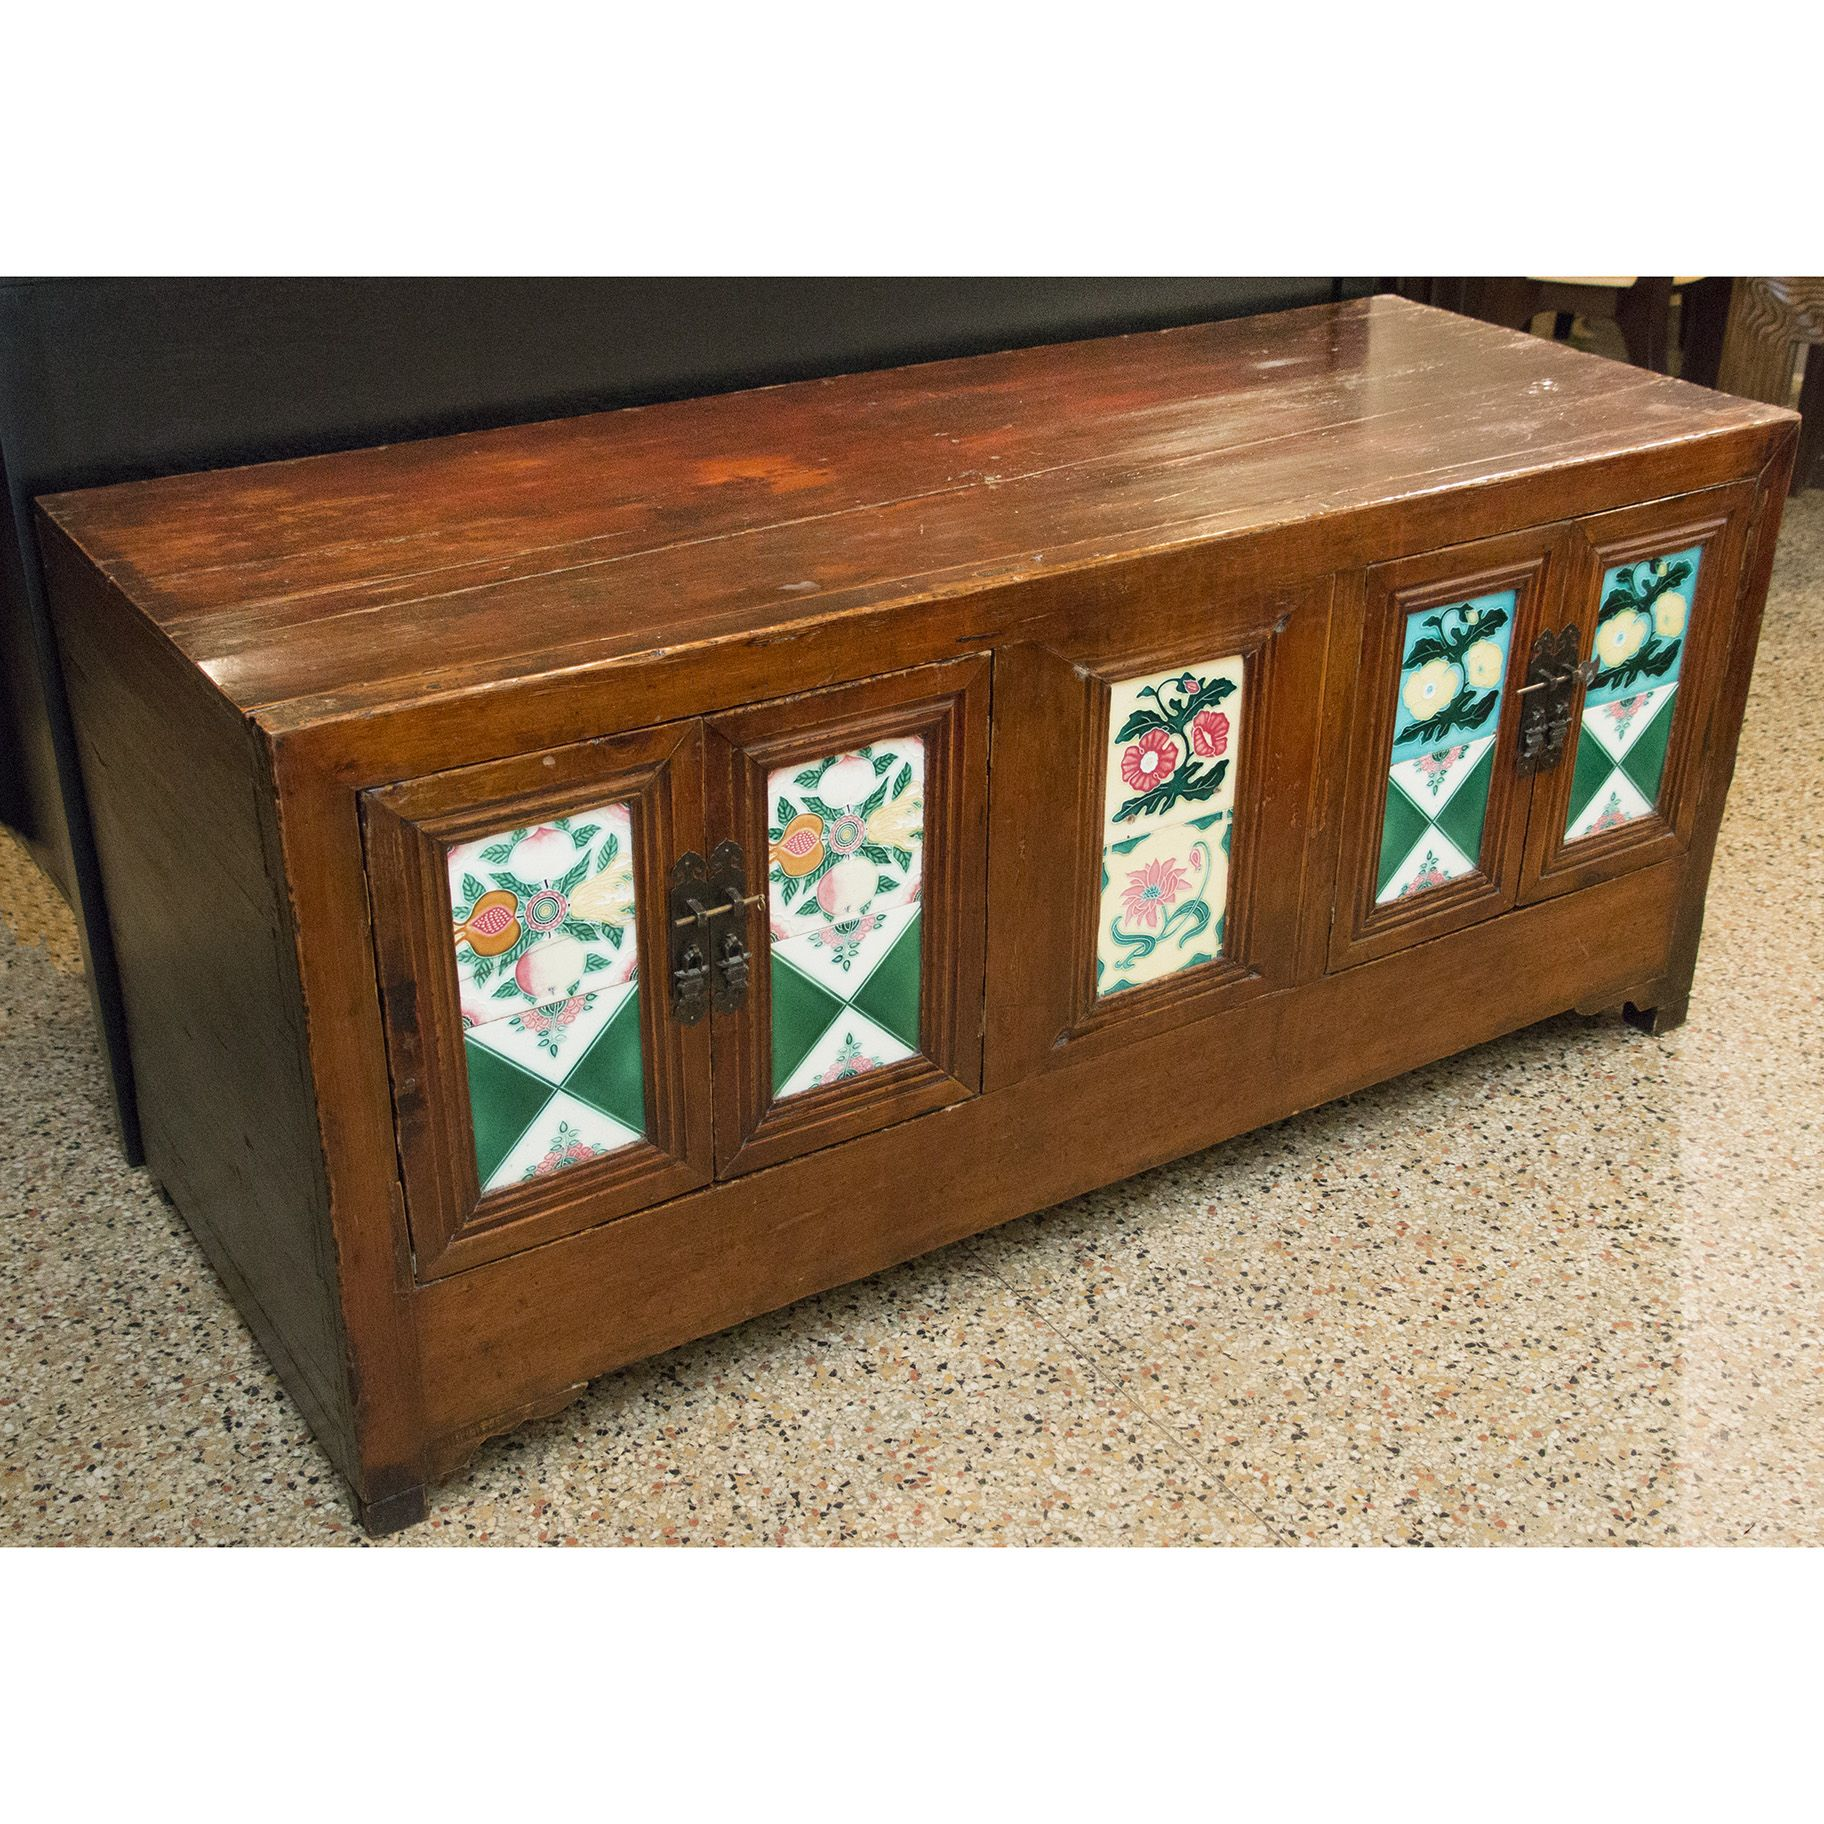 Low Profile Wood Trunk with Hand Painted Tile Inserts